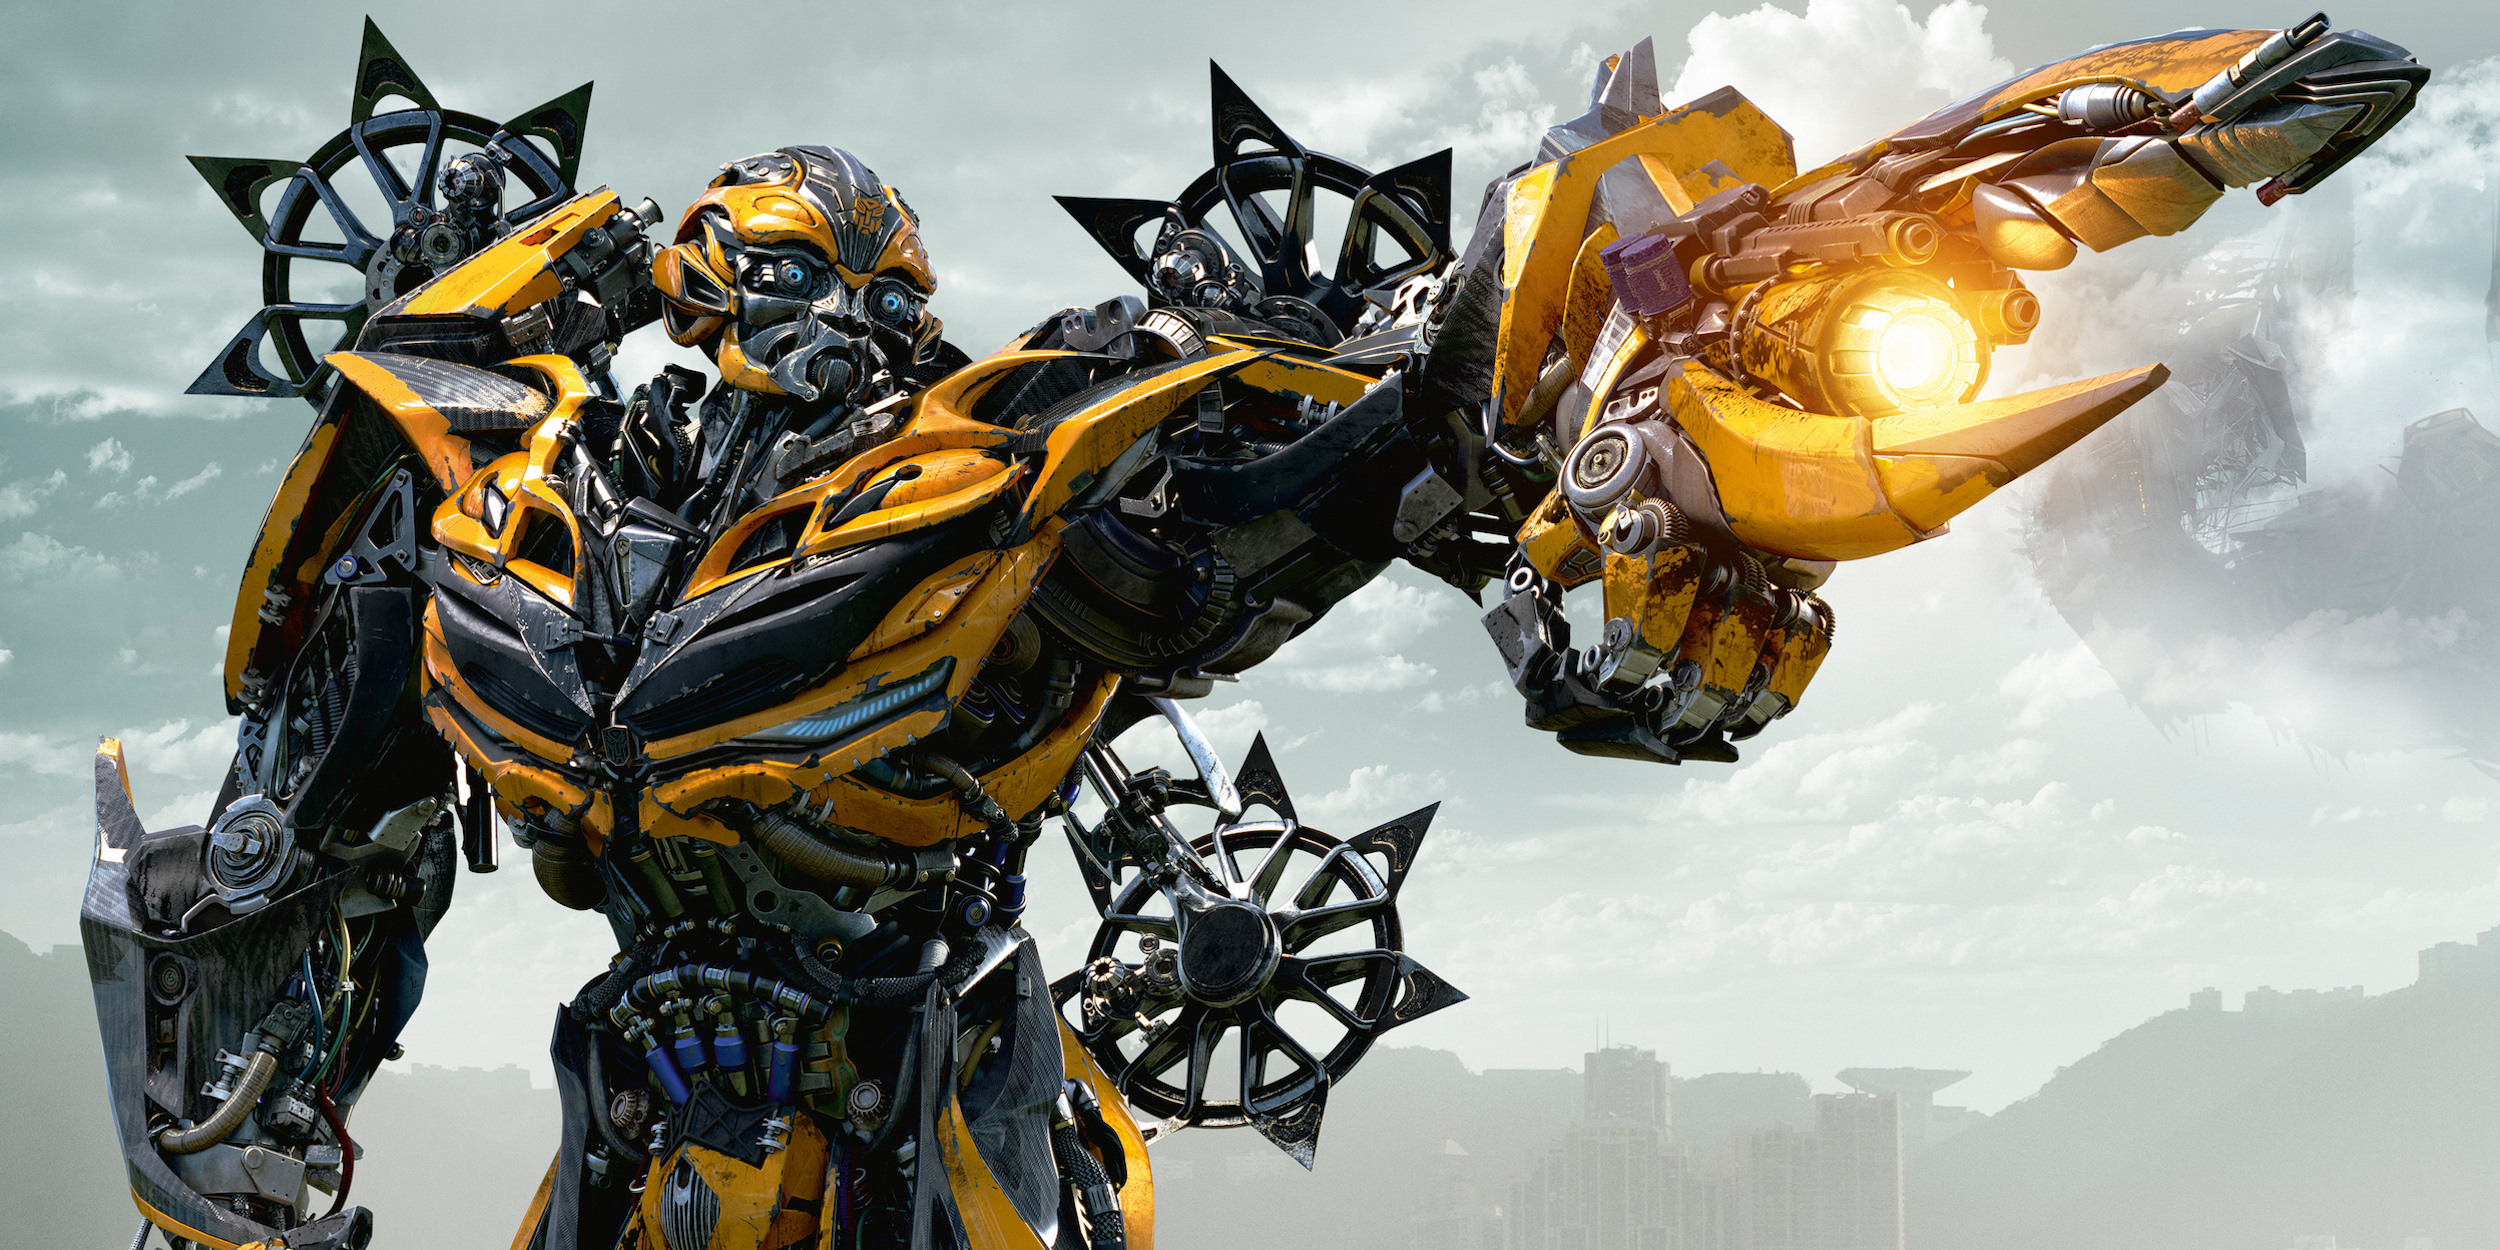 Why Is Optimus Prime Fighting Bumblebee in Transformers 5 ... Transformers